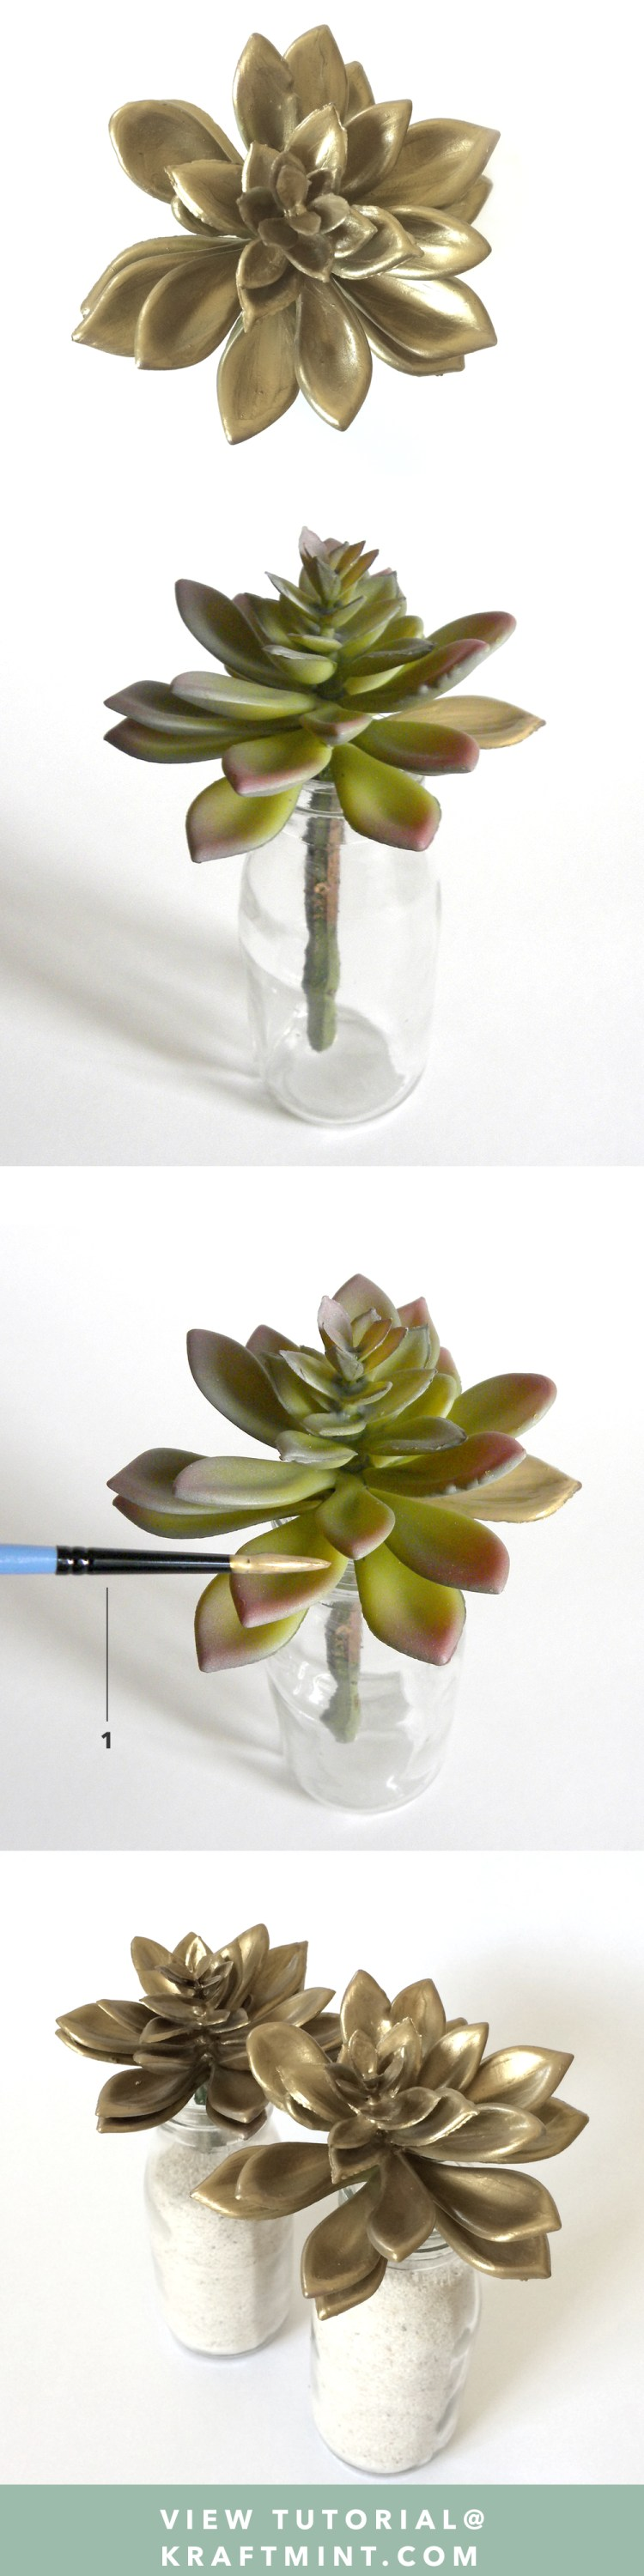 Golden Succulents DIY kraftmint.com